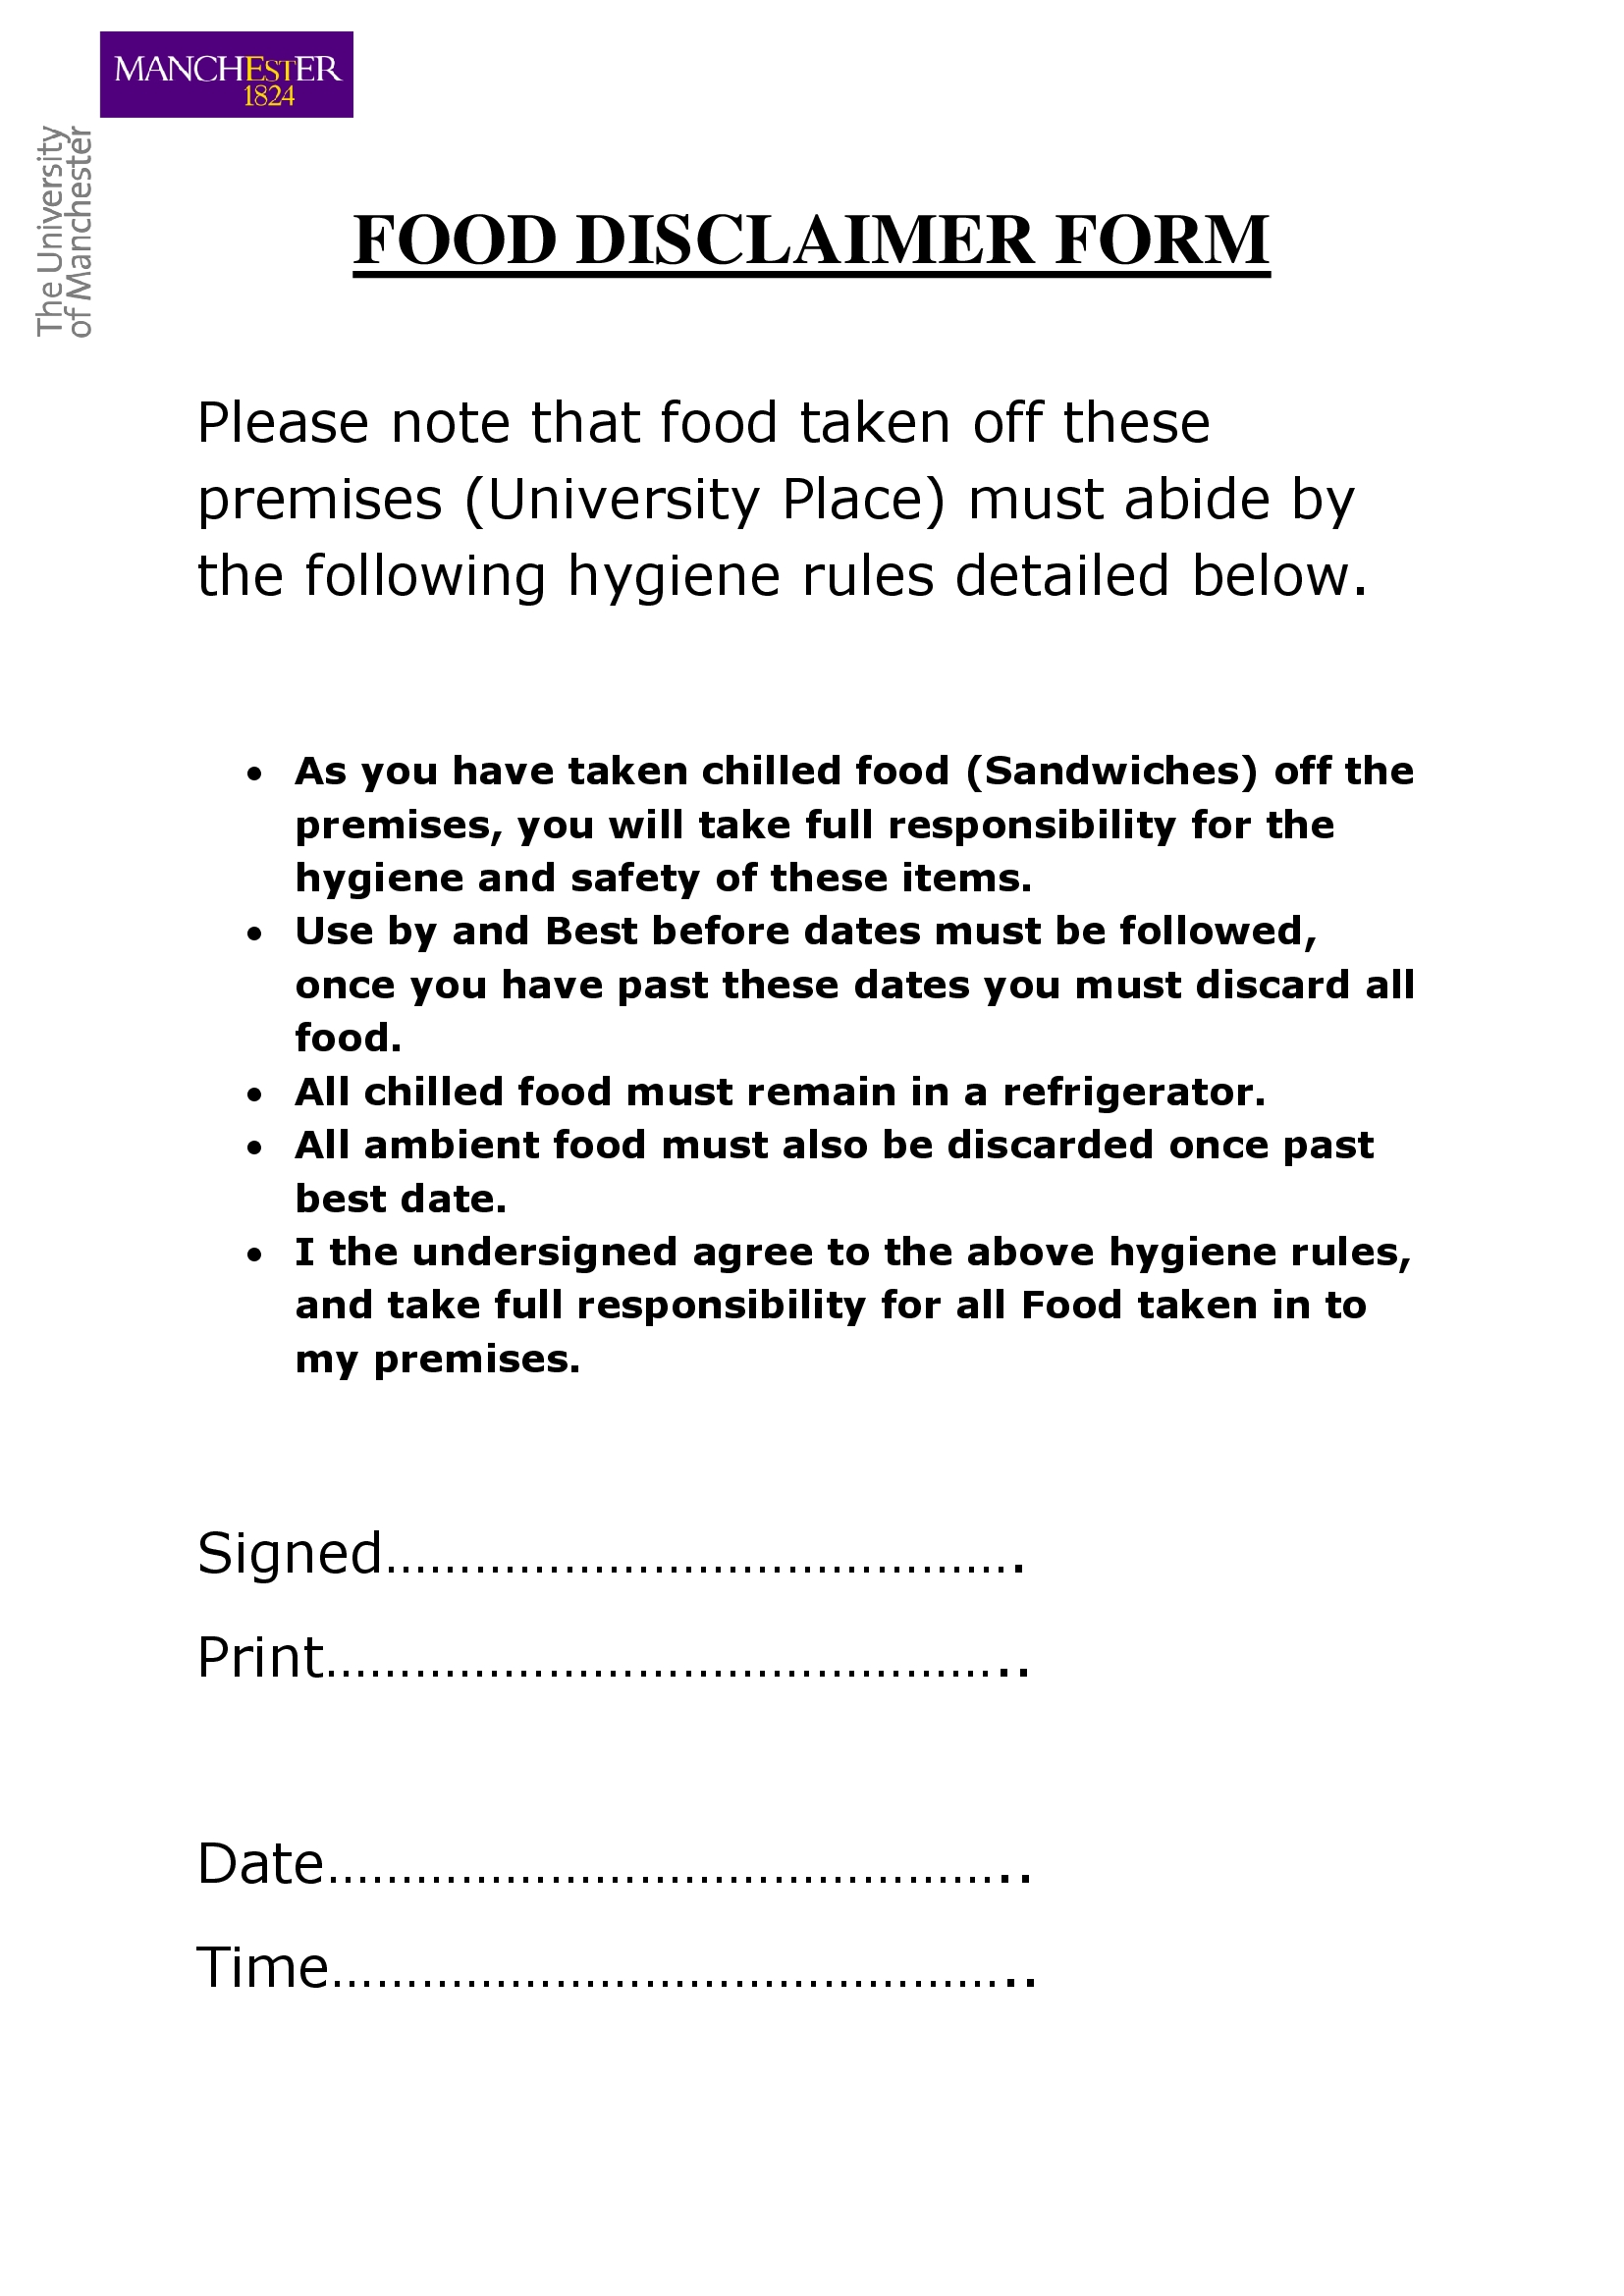 food disclaimer form in doc